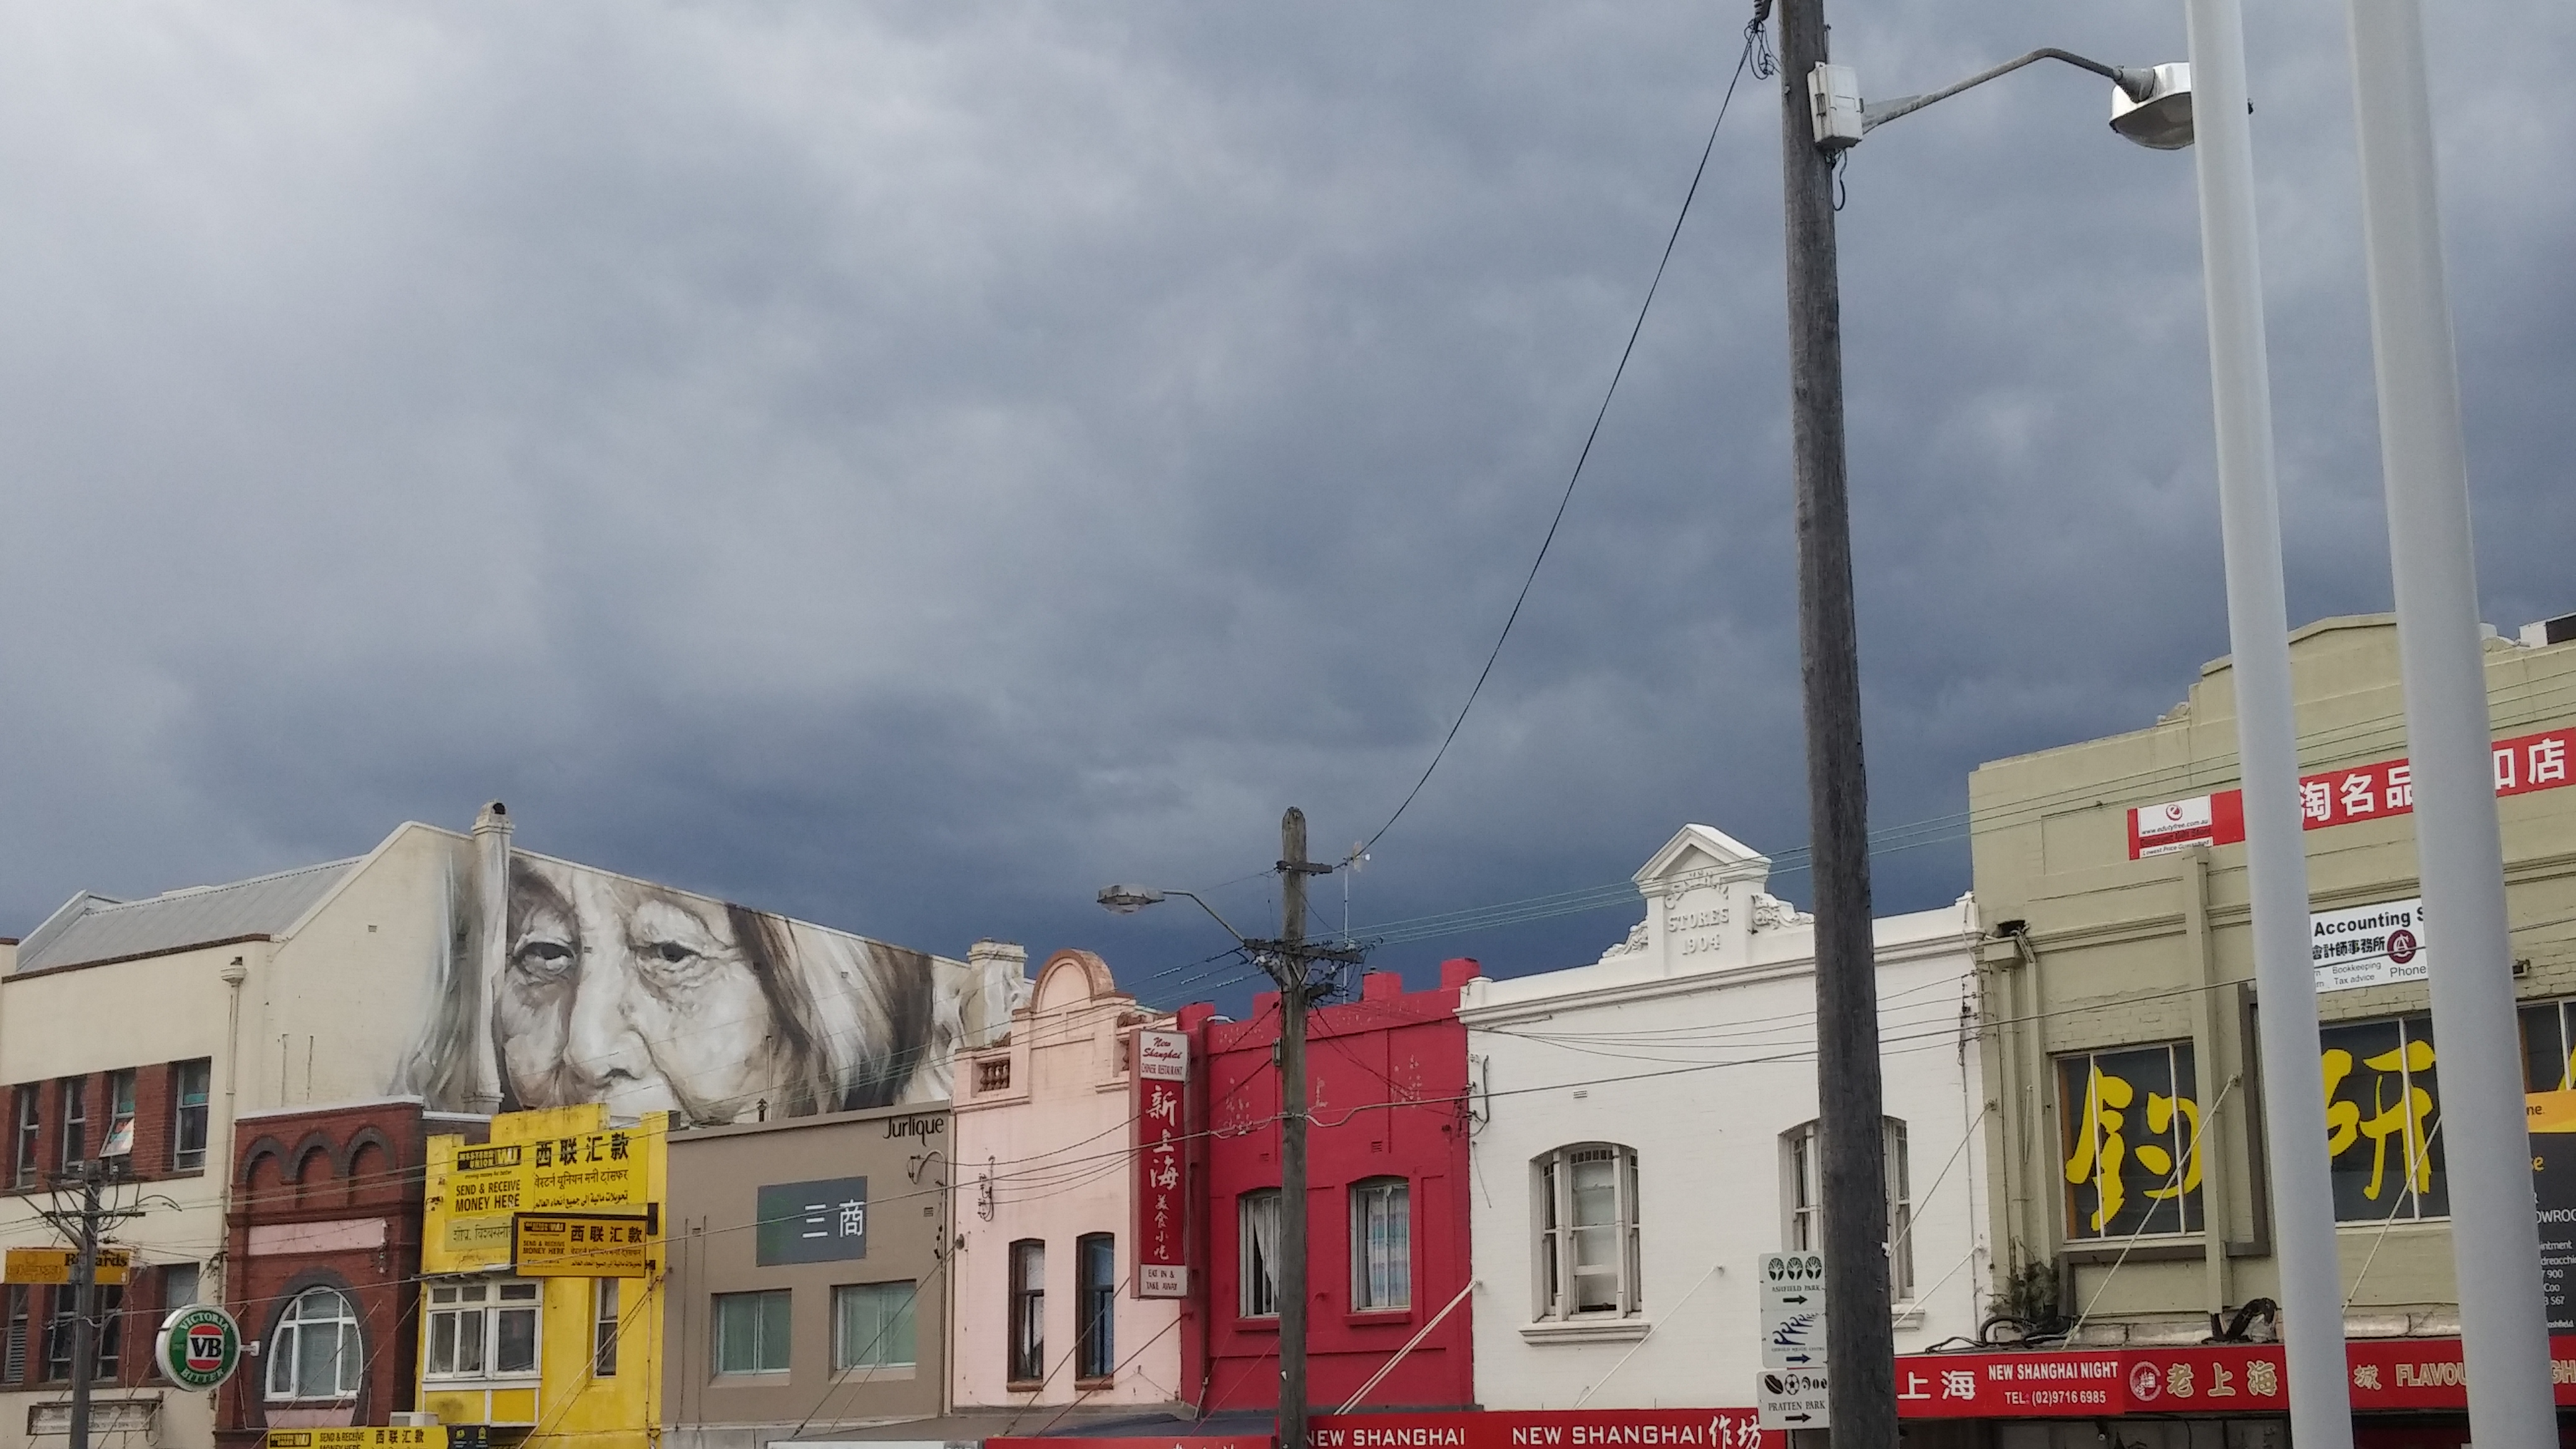 Ashfield Street Scene